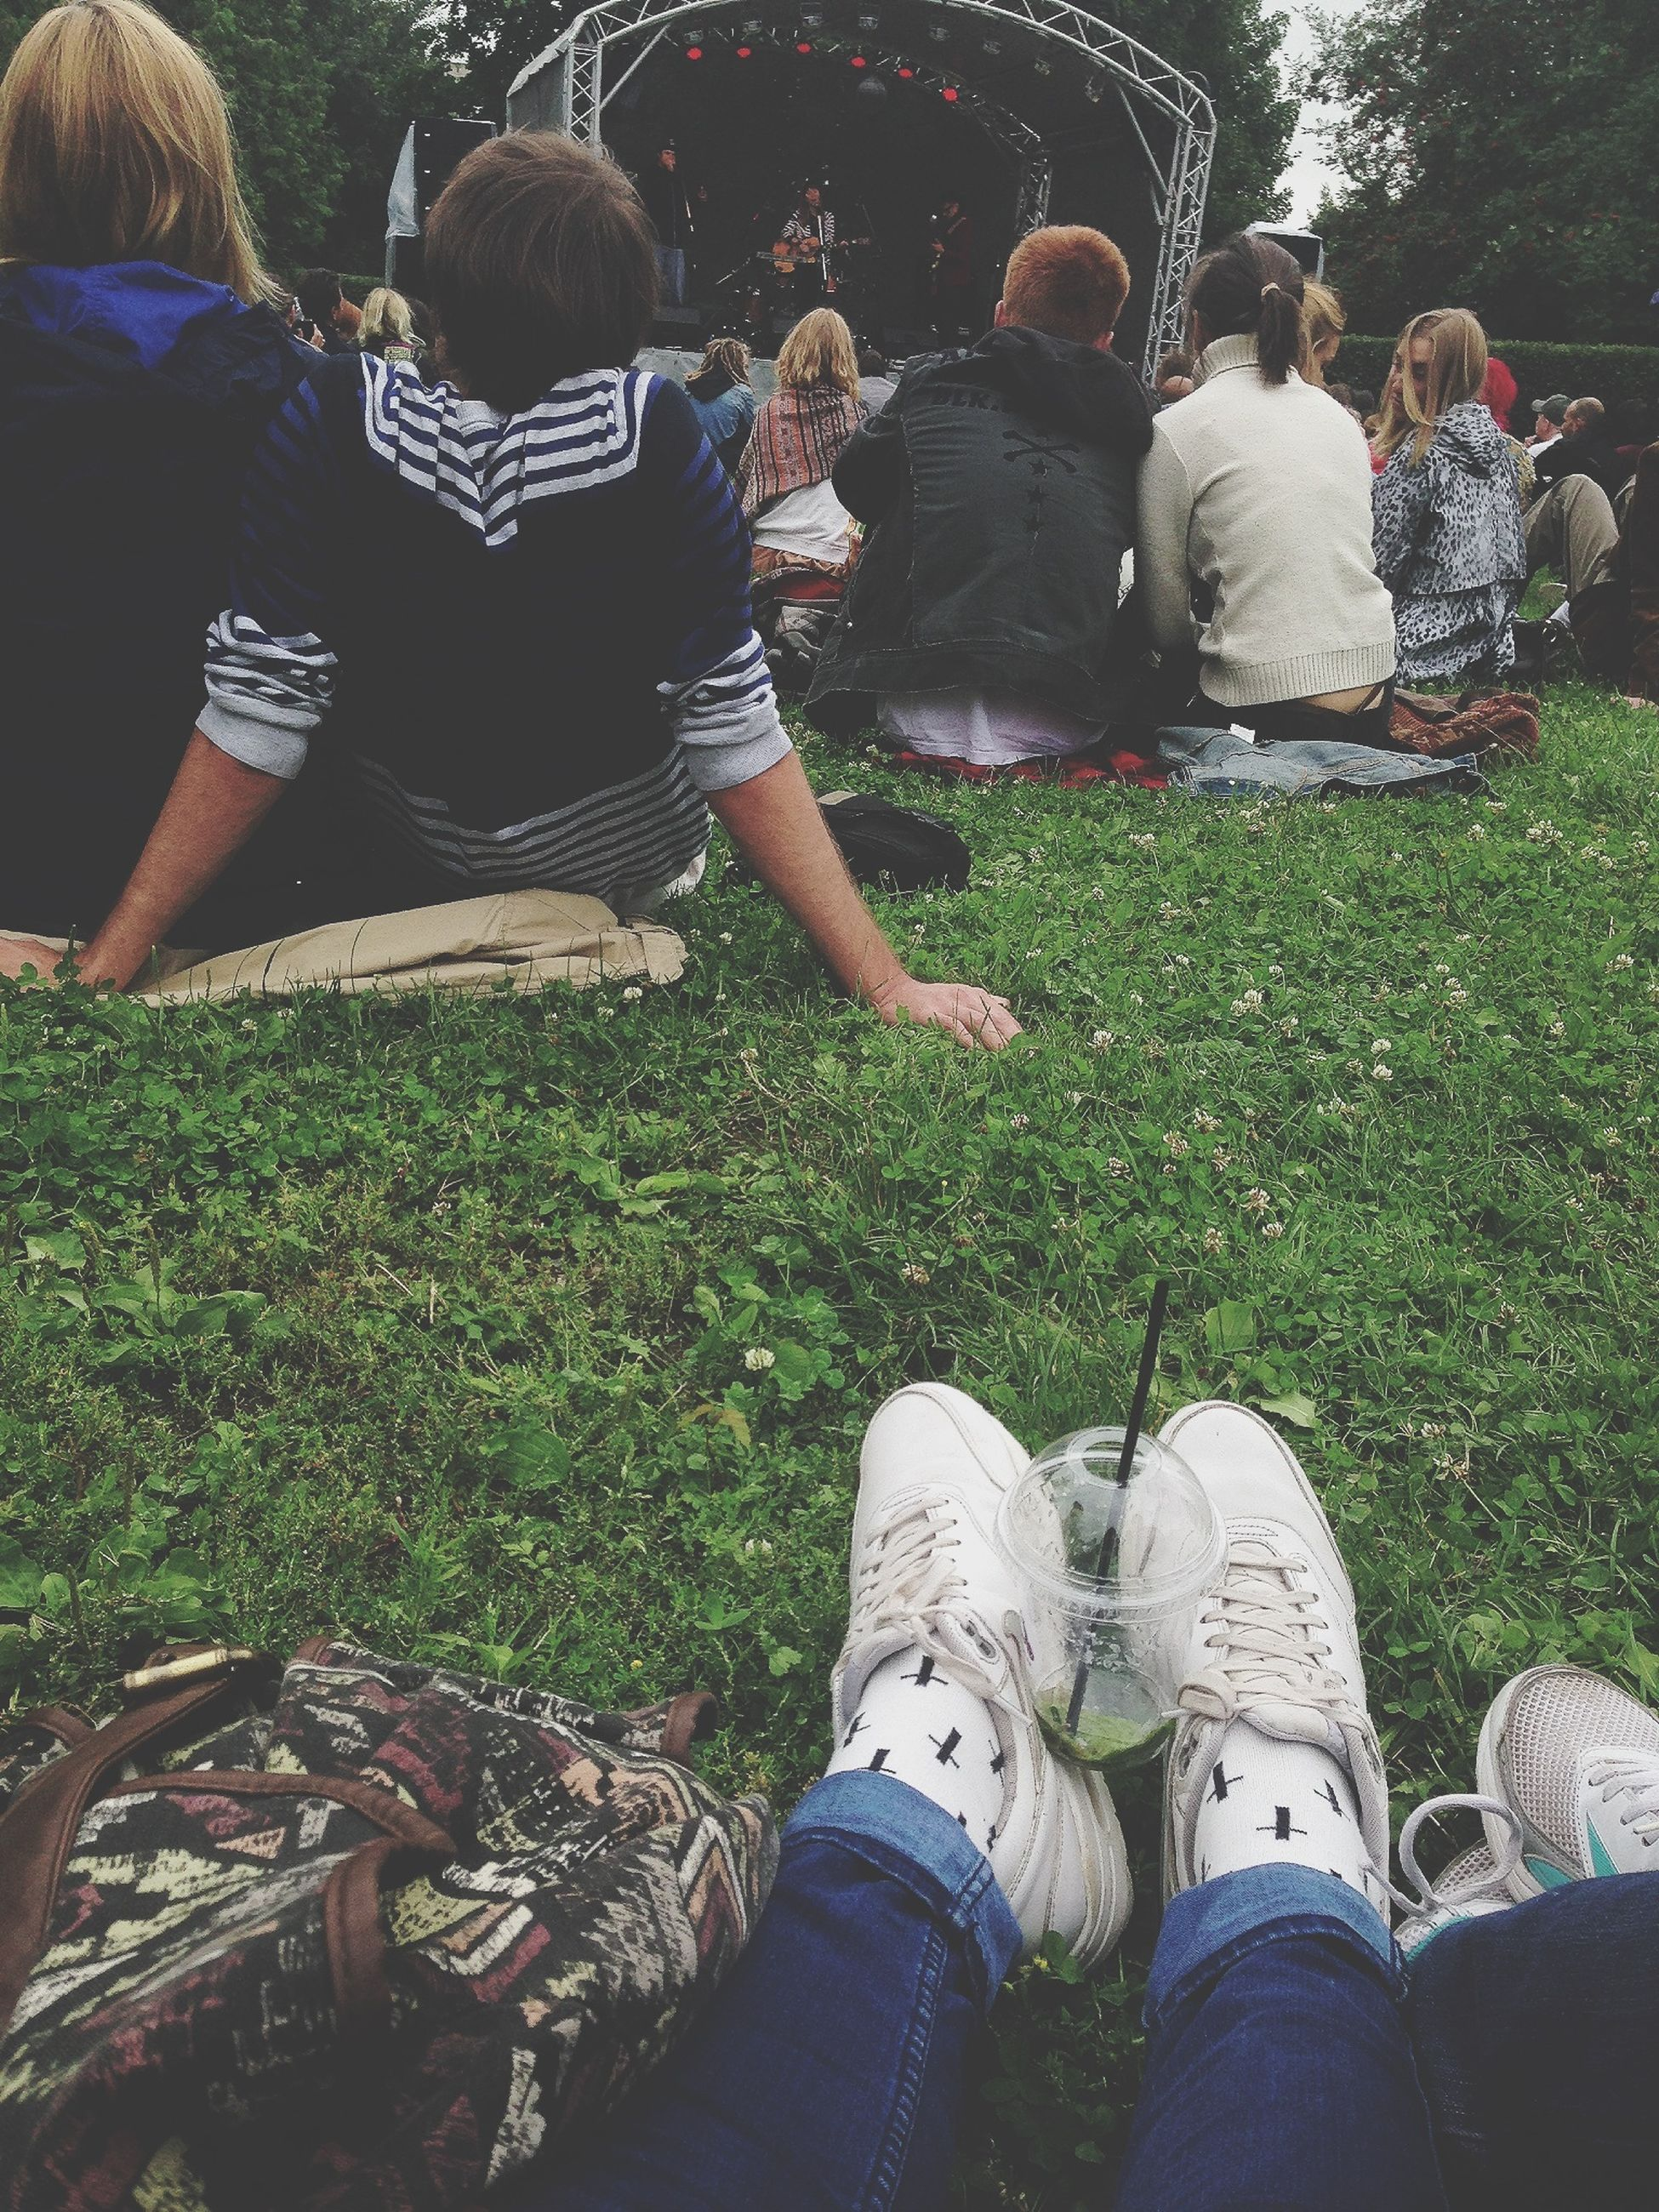 low section, lifestyles, leisure activity, grass, person, men, shoe, casual clothing, standing, togetherness, field, sitting, friendship, bonding, relaxation, grassy